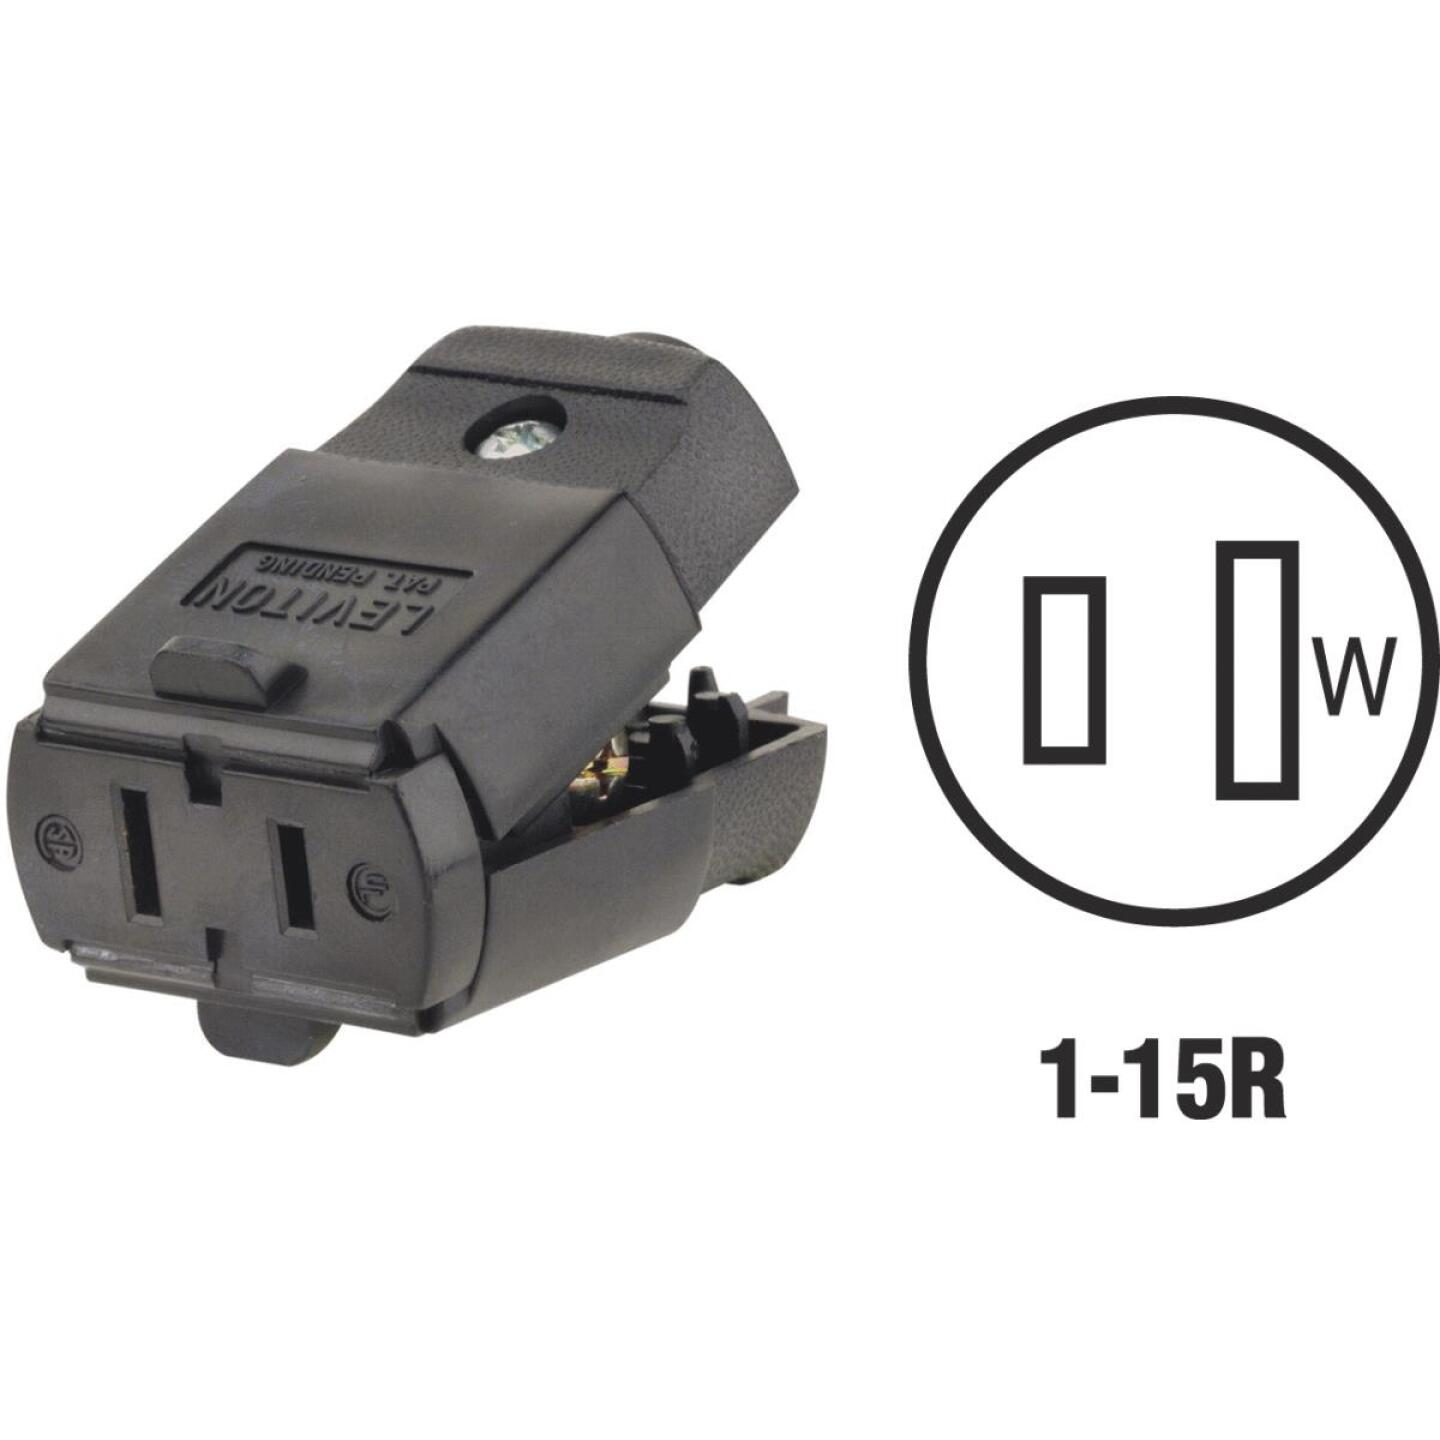 Leviton 15A 125V 2-Wire 2-Pole Hinged Cord Connector, Black Image 1